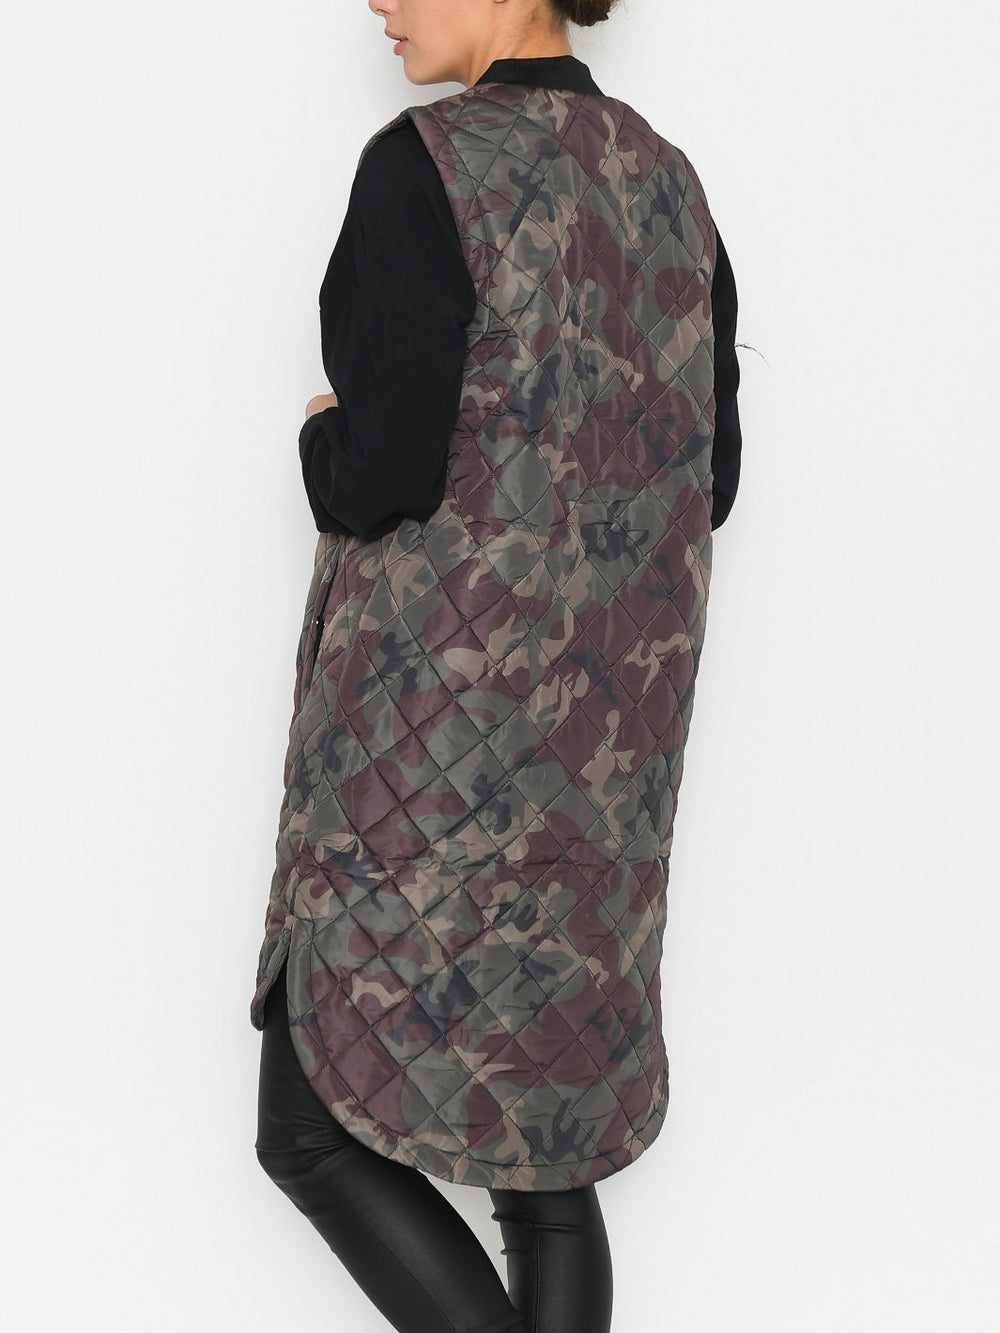 Kaffe KAmoriana quilted waistcoat camouflage print - Online-Mode